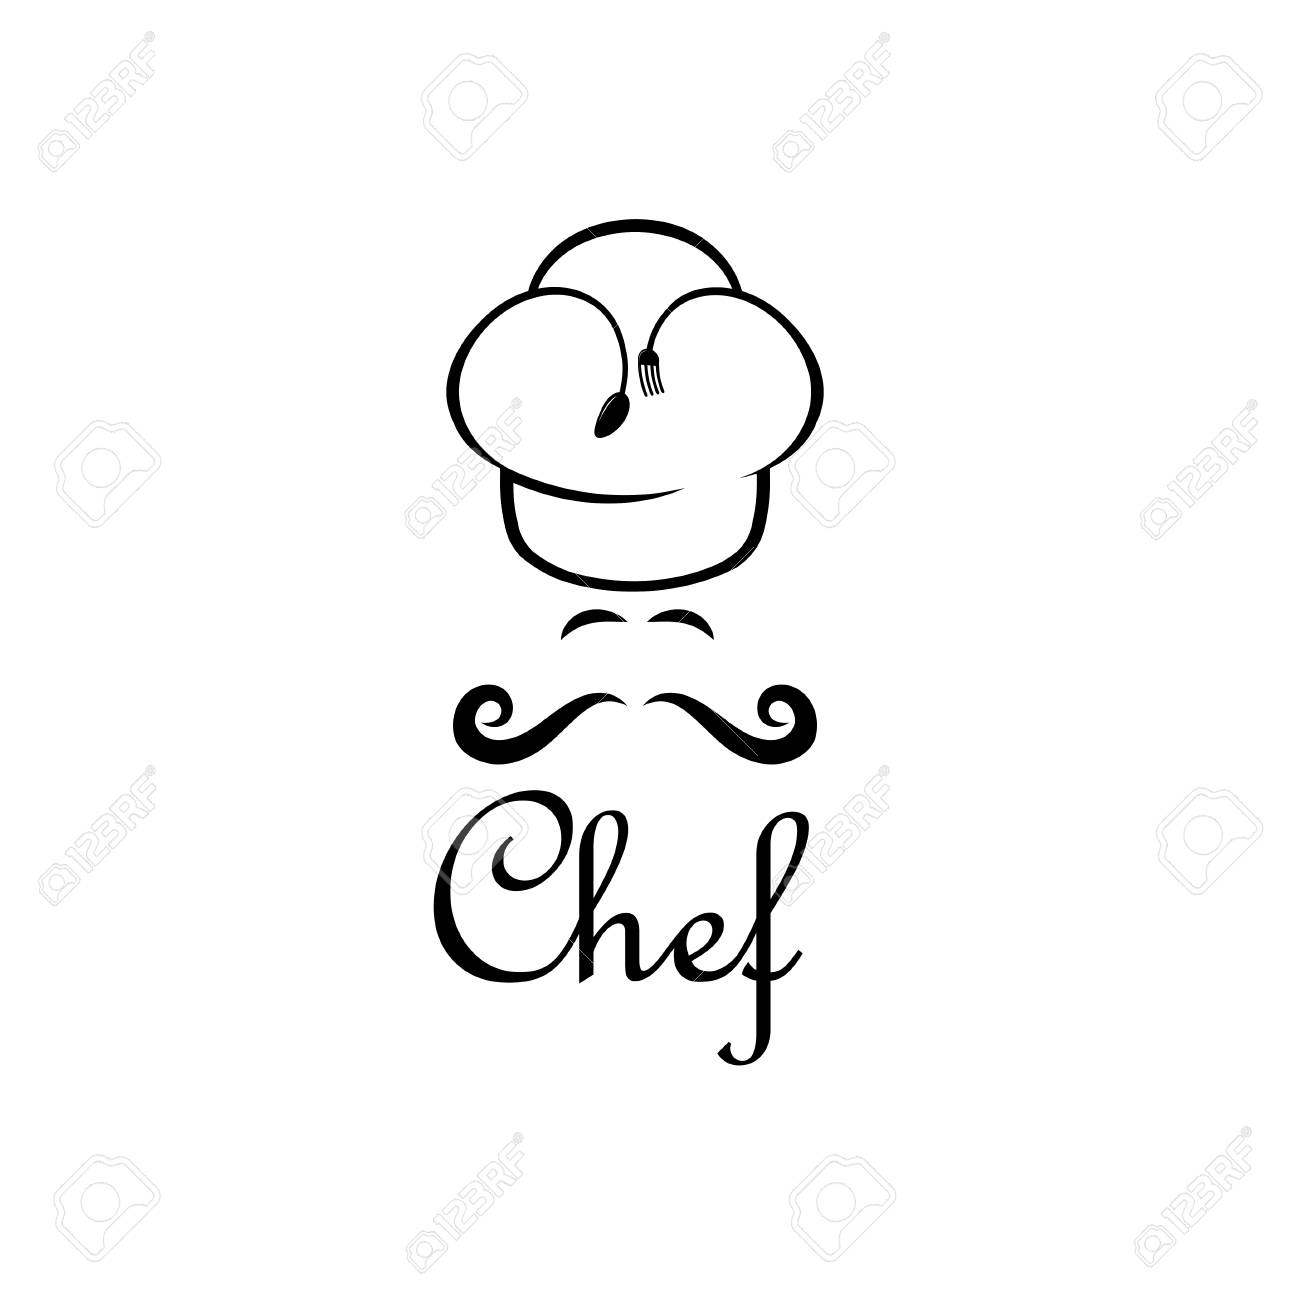 chef vector design template royalty free cliparts vectors and